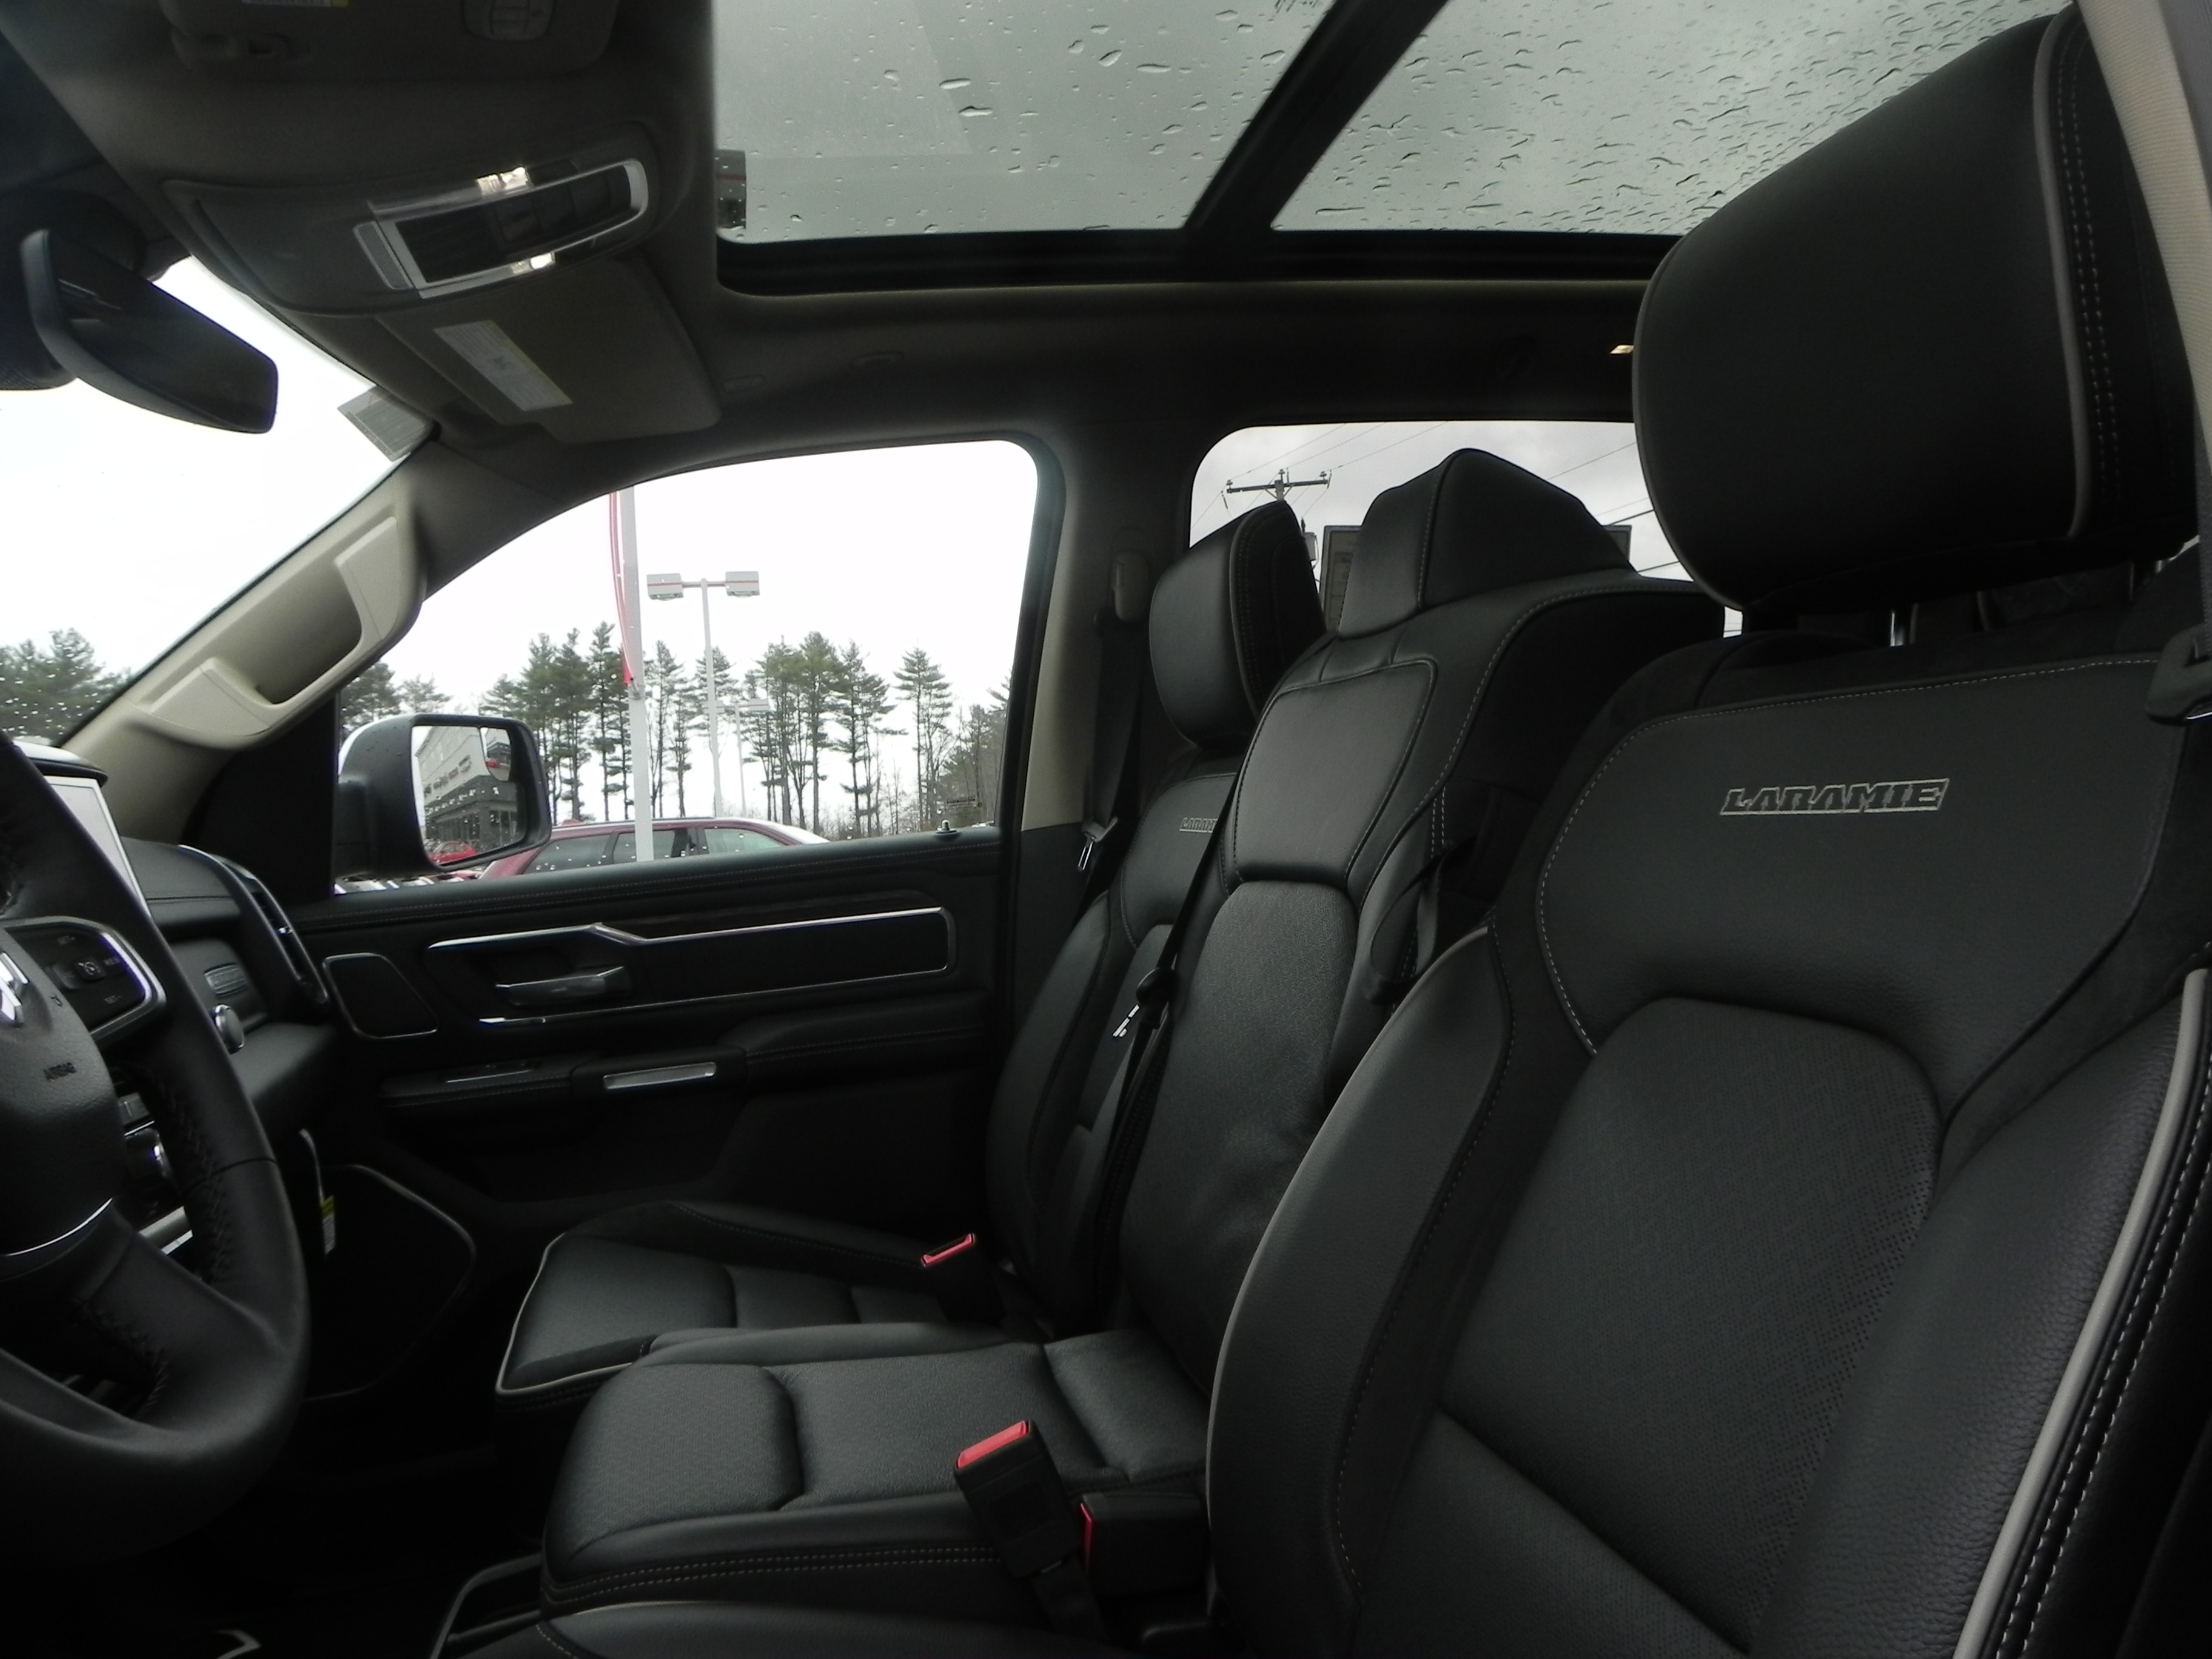 2019 Ram 1500 Crew Cab 4x4, Pickup #219013 - photo 24